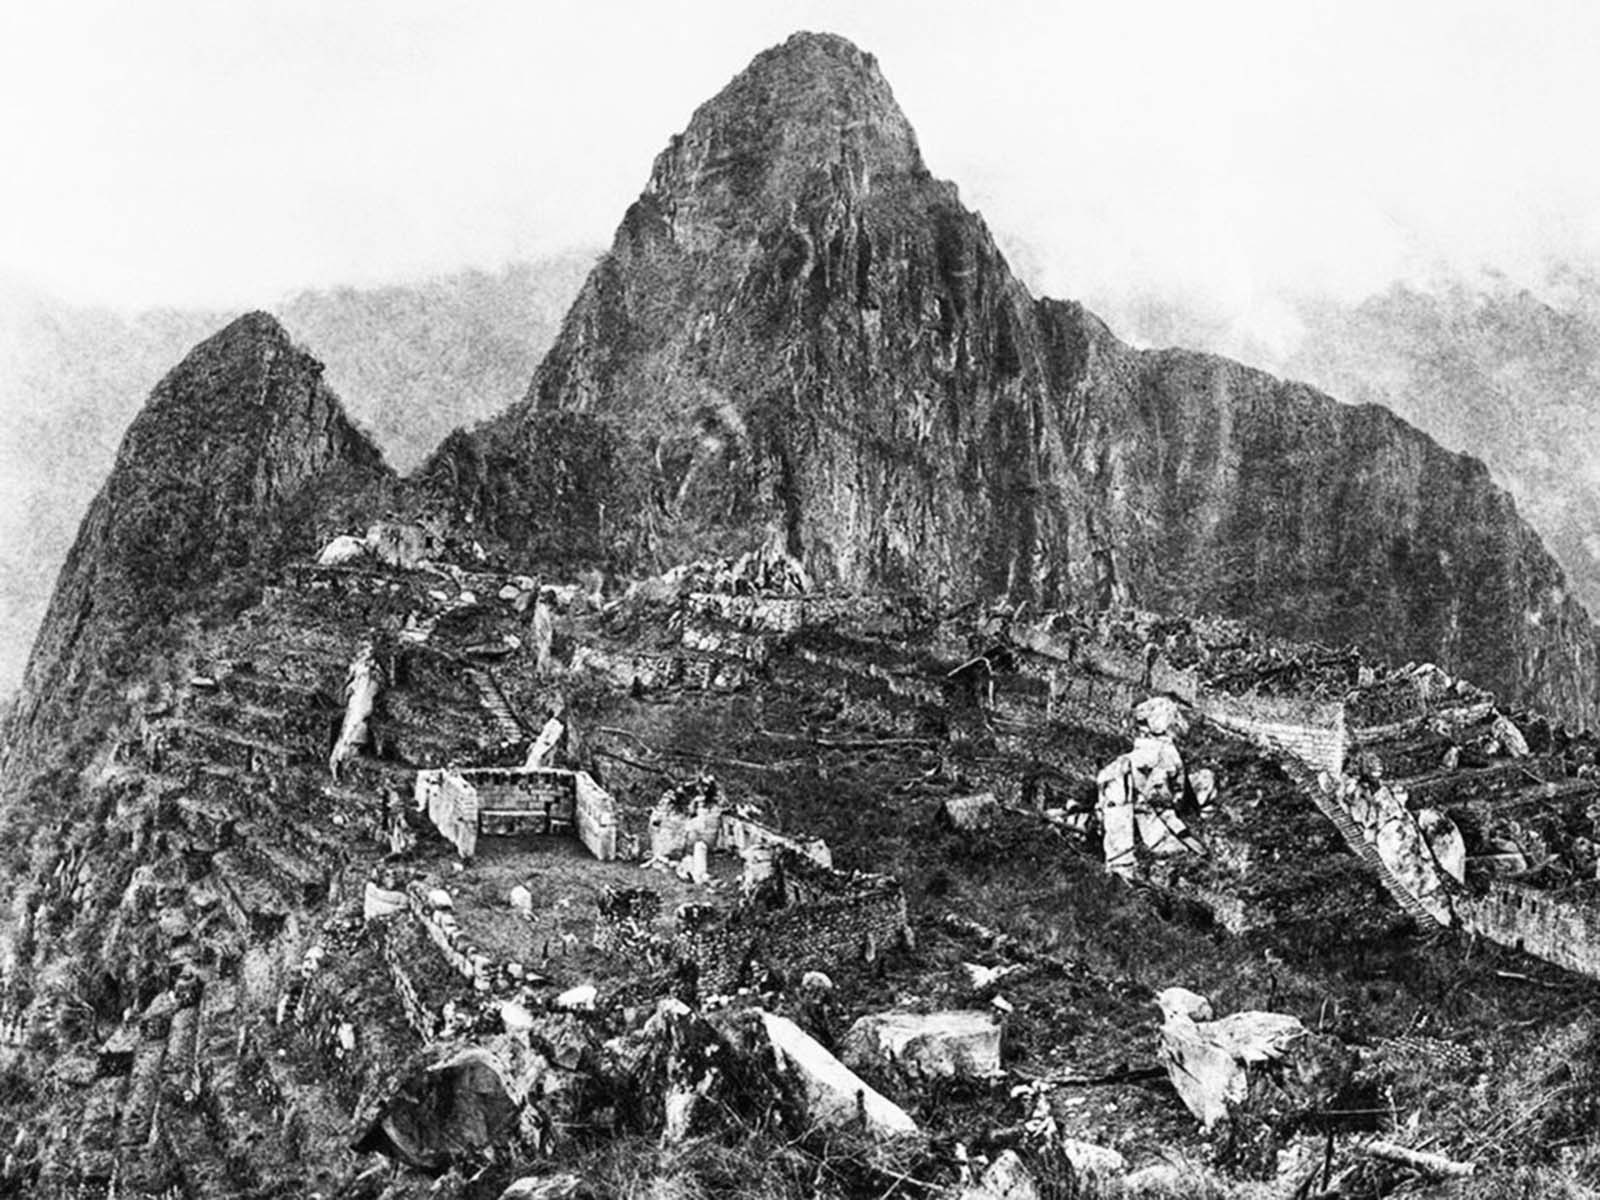 The ruins of Machu Picchu covered in jungle growth in this 1911 photograph taken when Yale archaeologist Hiram Bingham first came to the site.